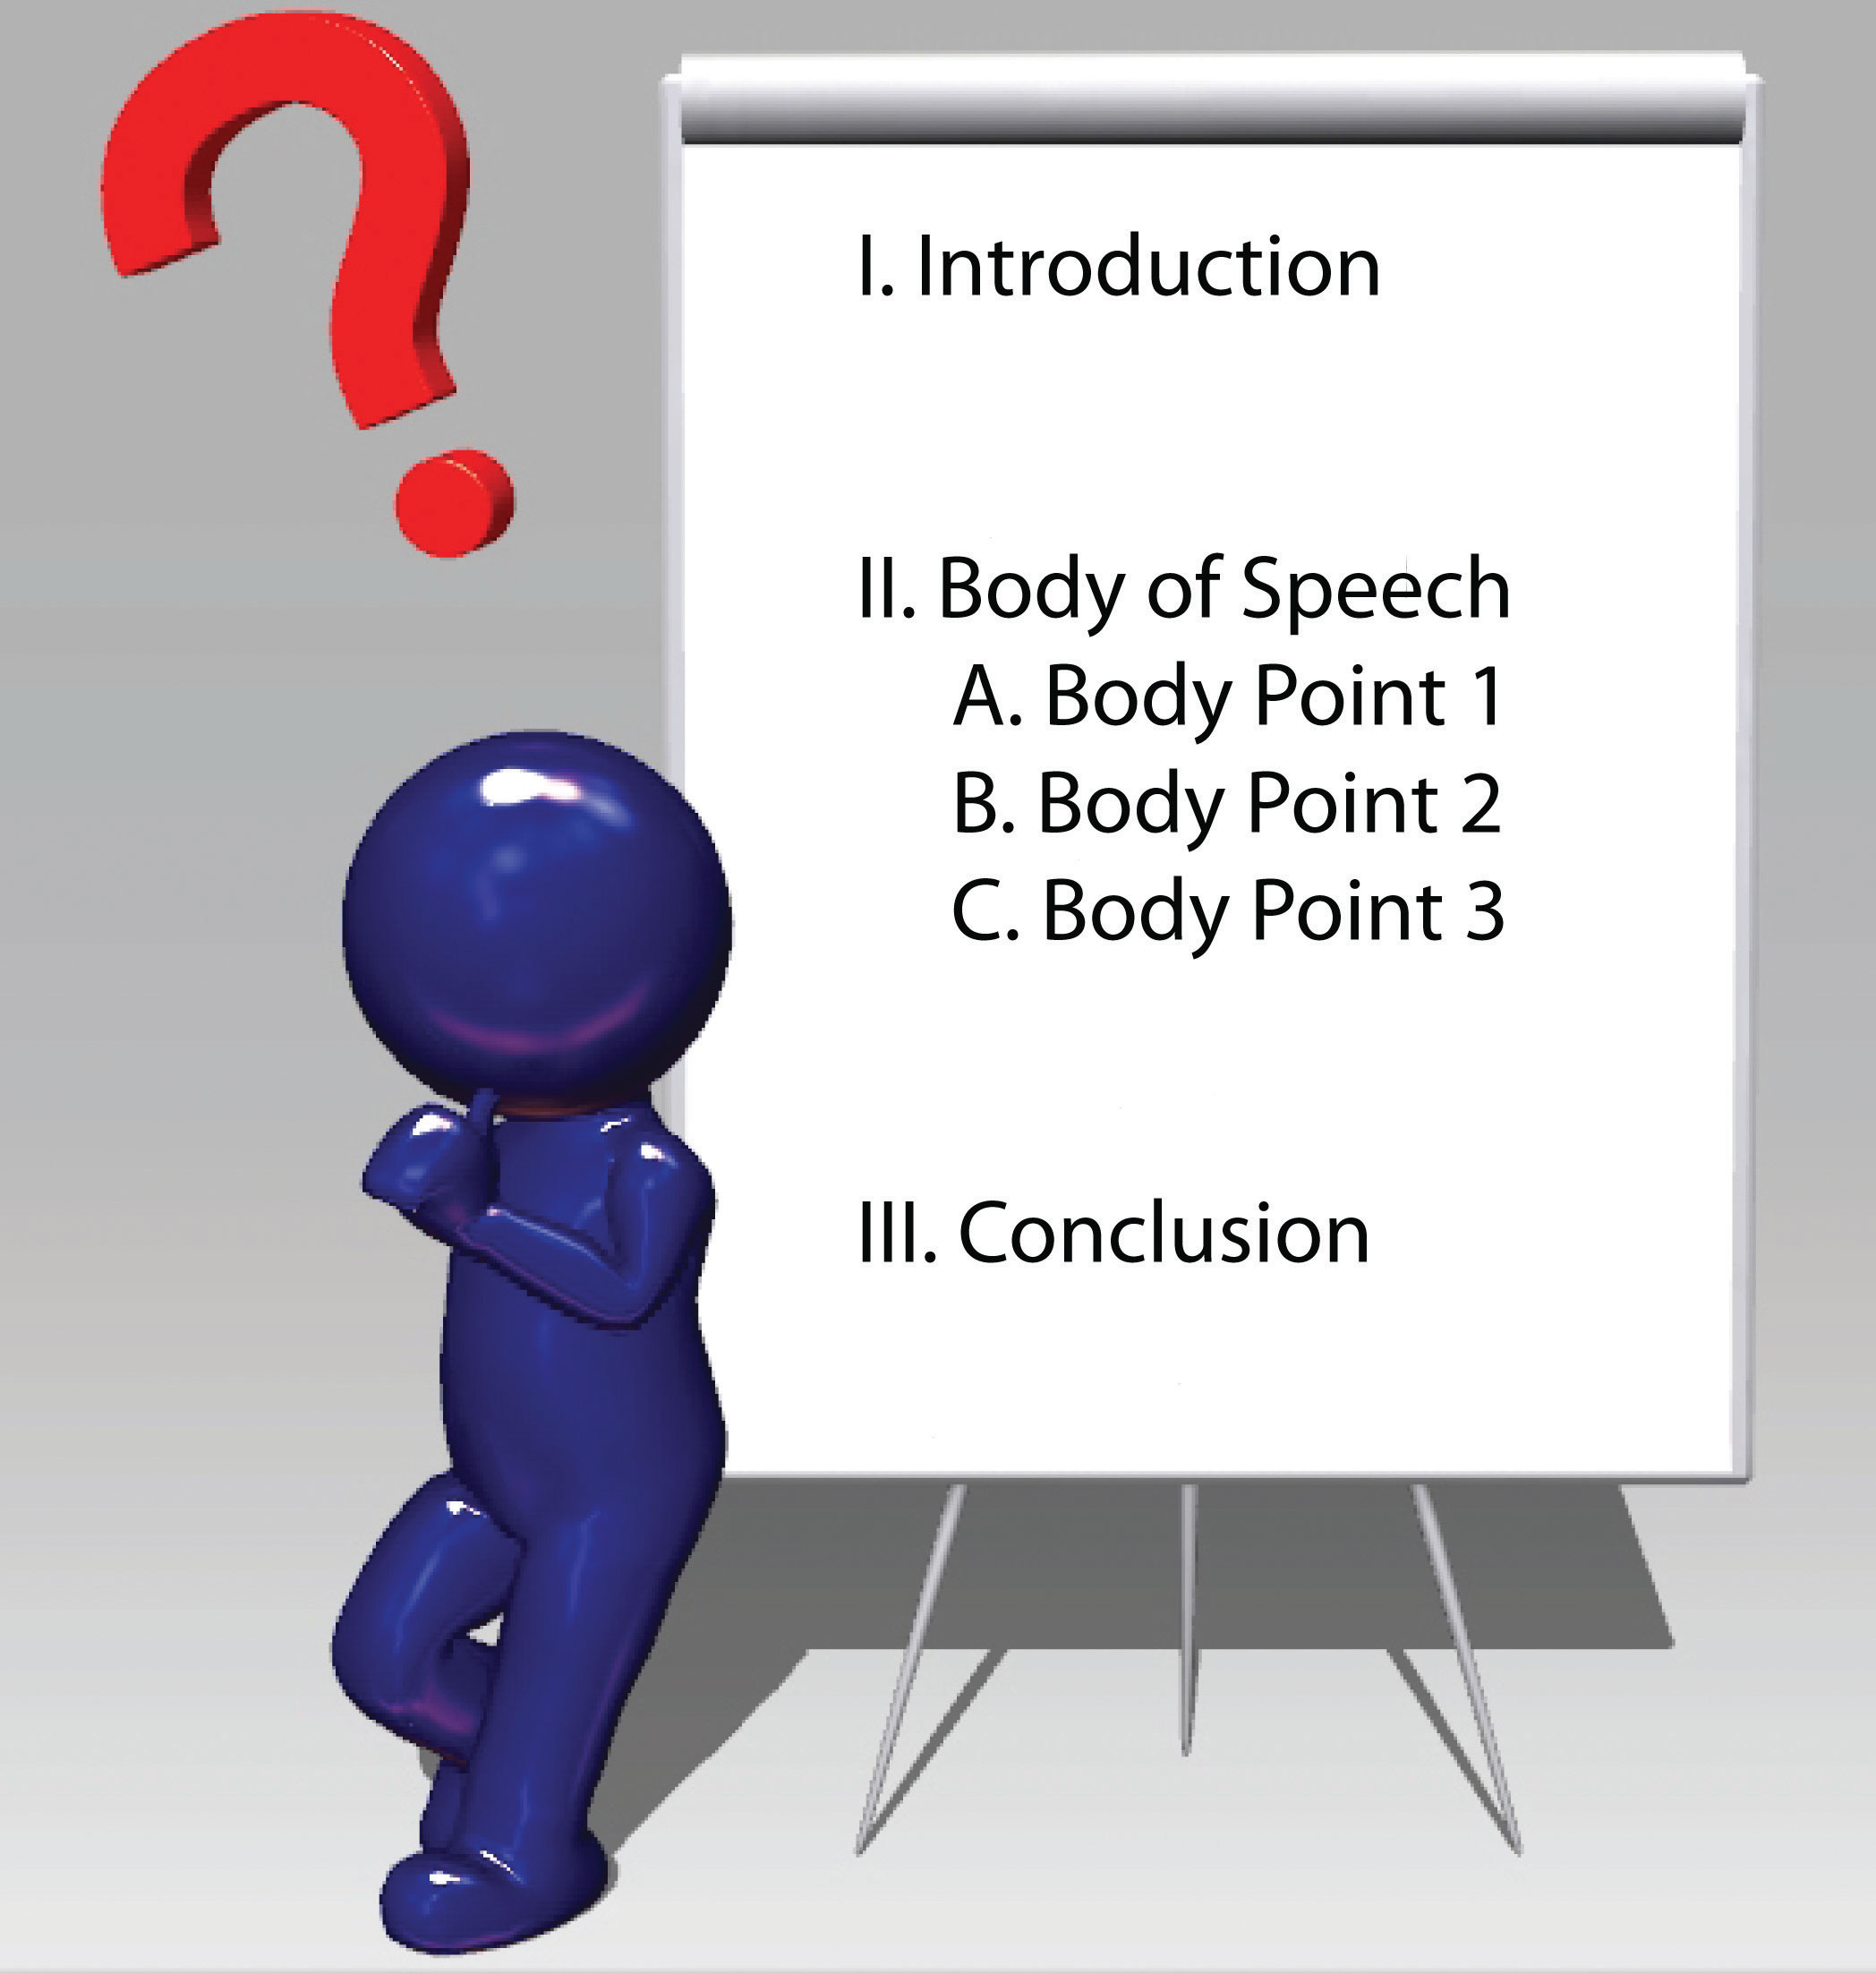 public speaking practice and ethics Start studying ethics and public speaking learn vocabulary, terms, and more with flashcards, games, and other study tools.